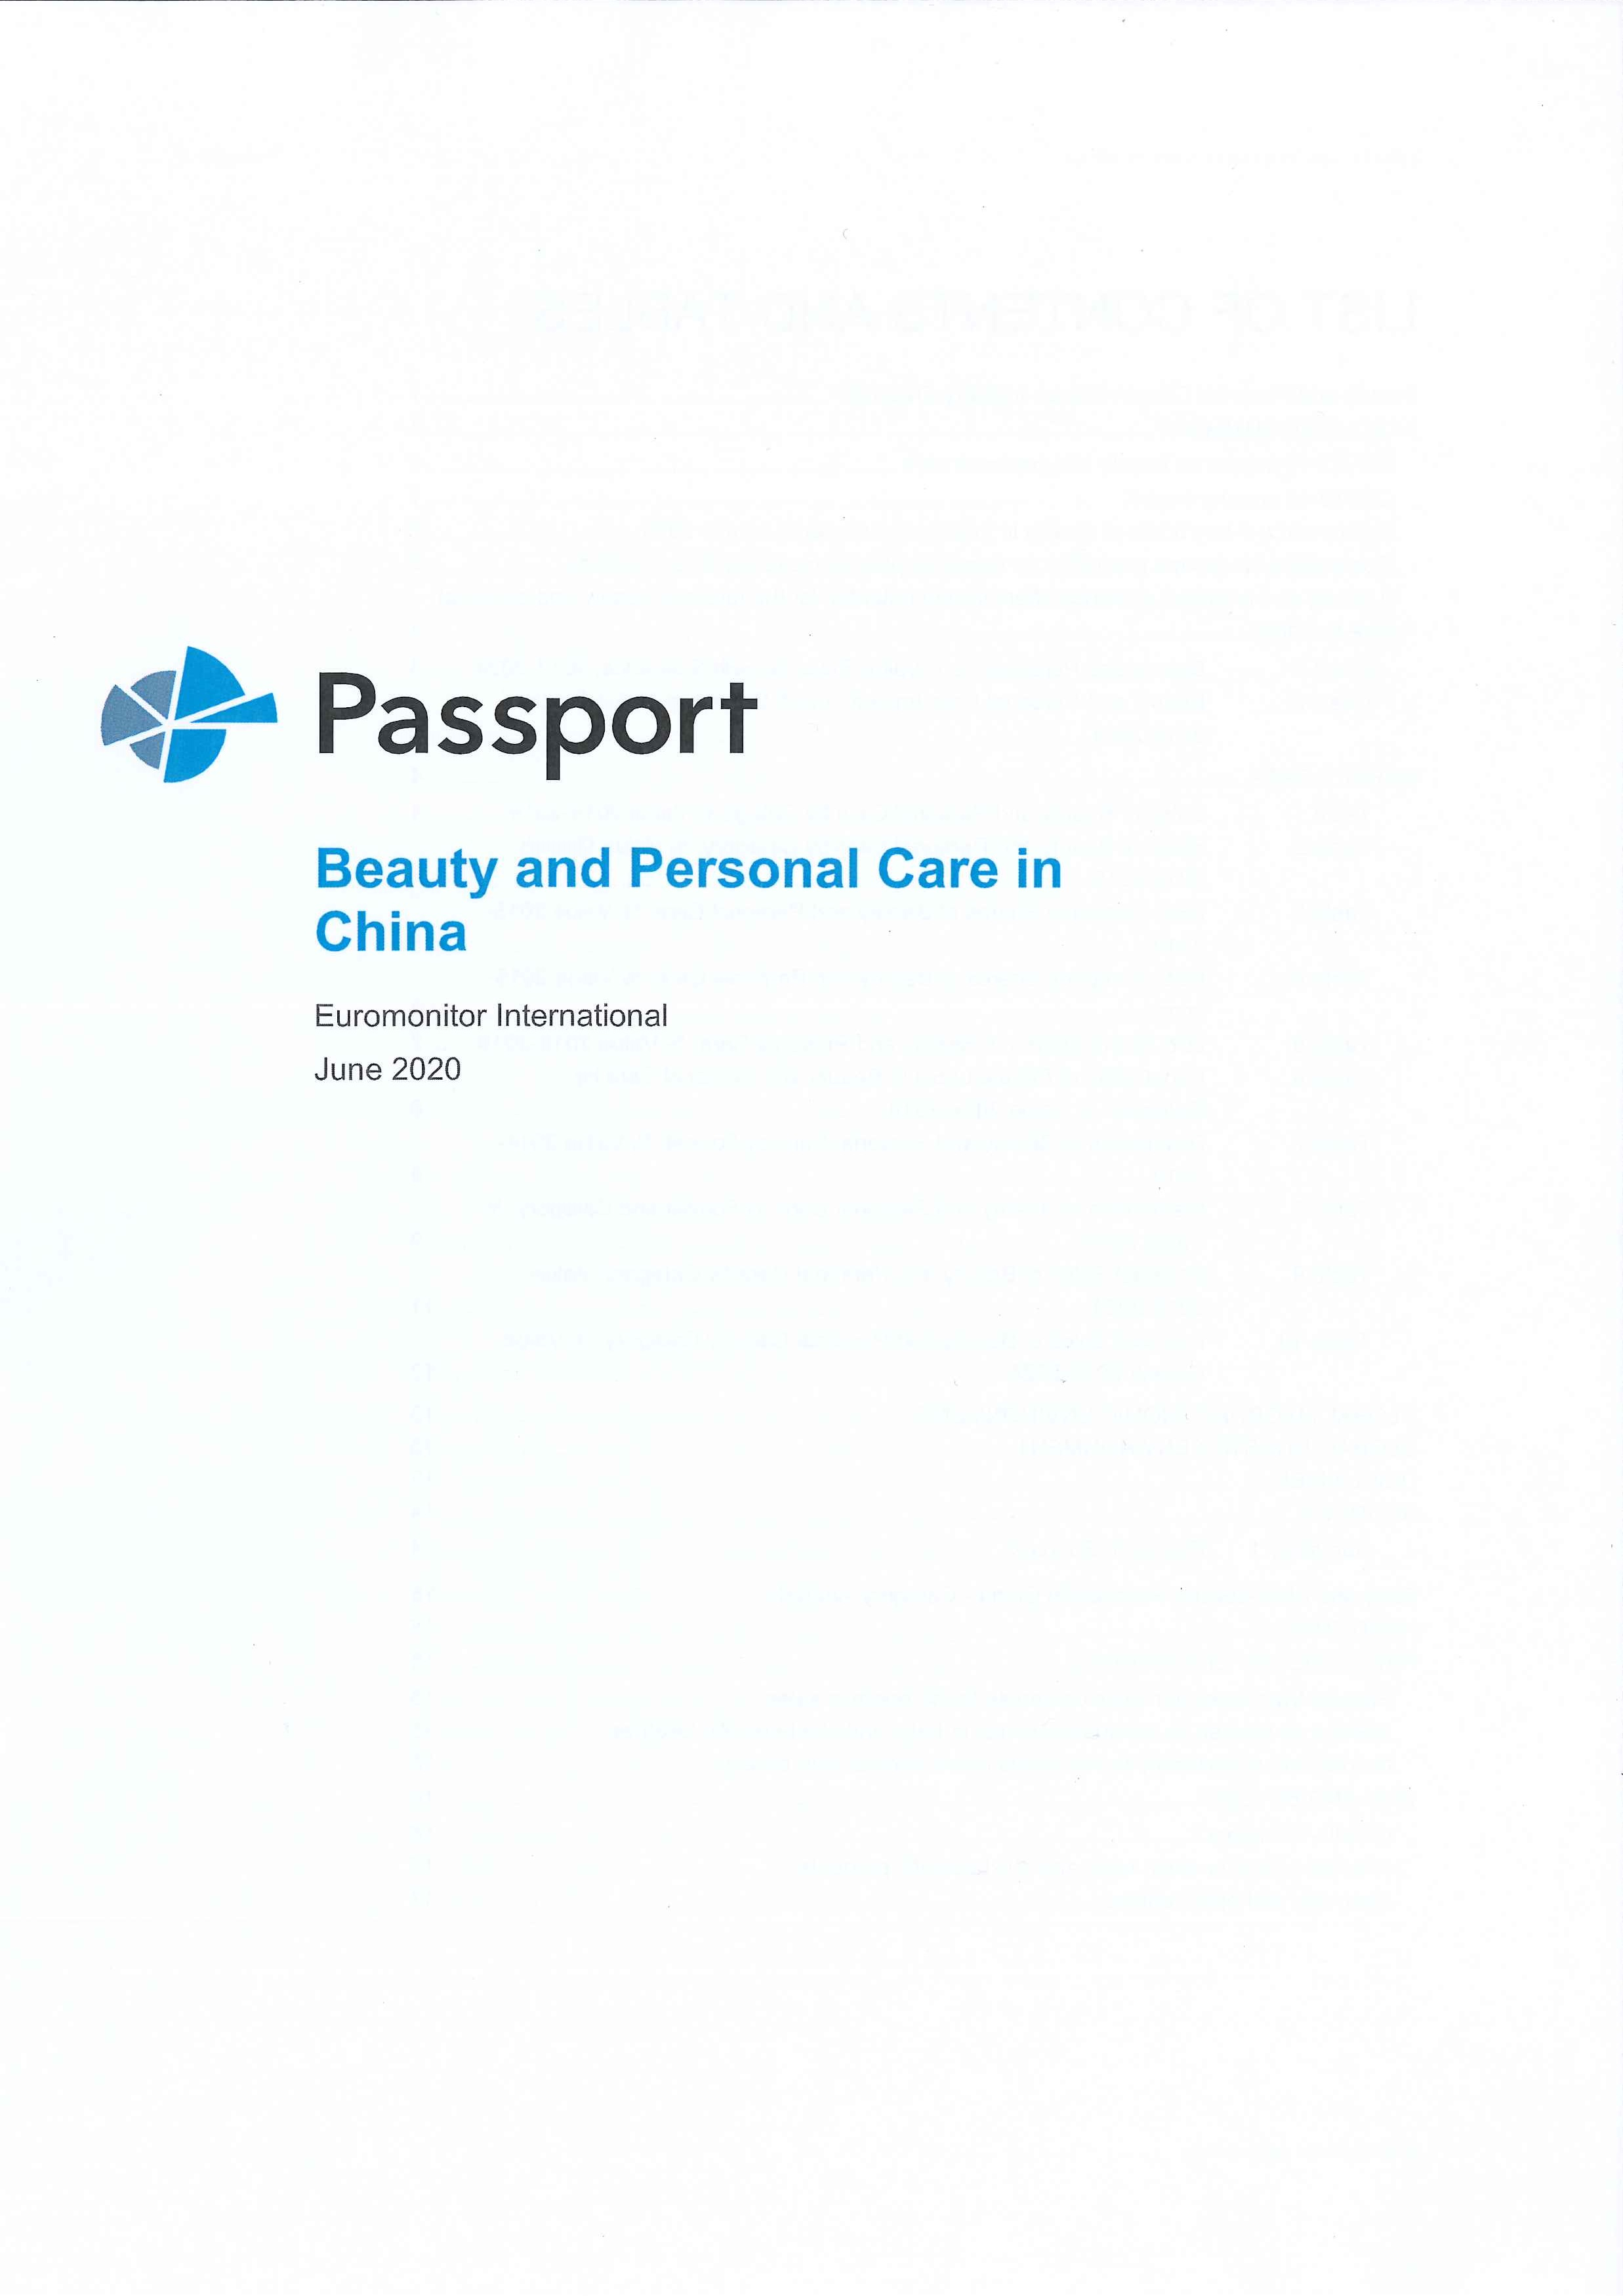 Beauty and personal care in China [e-book]